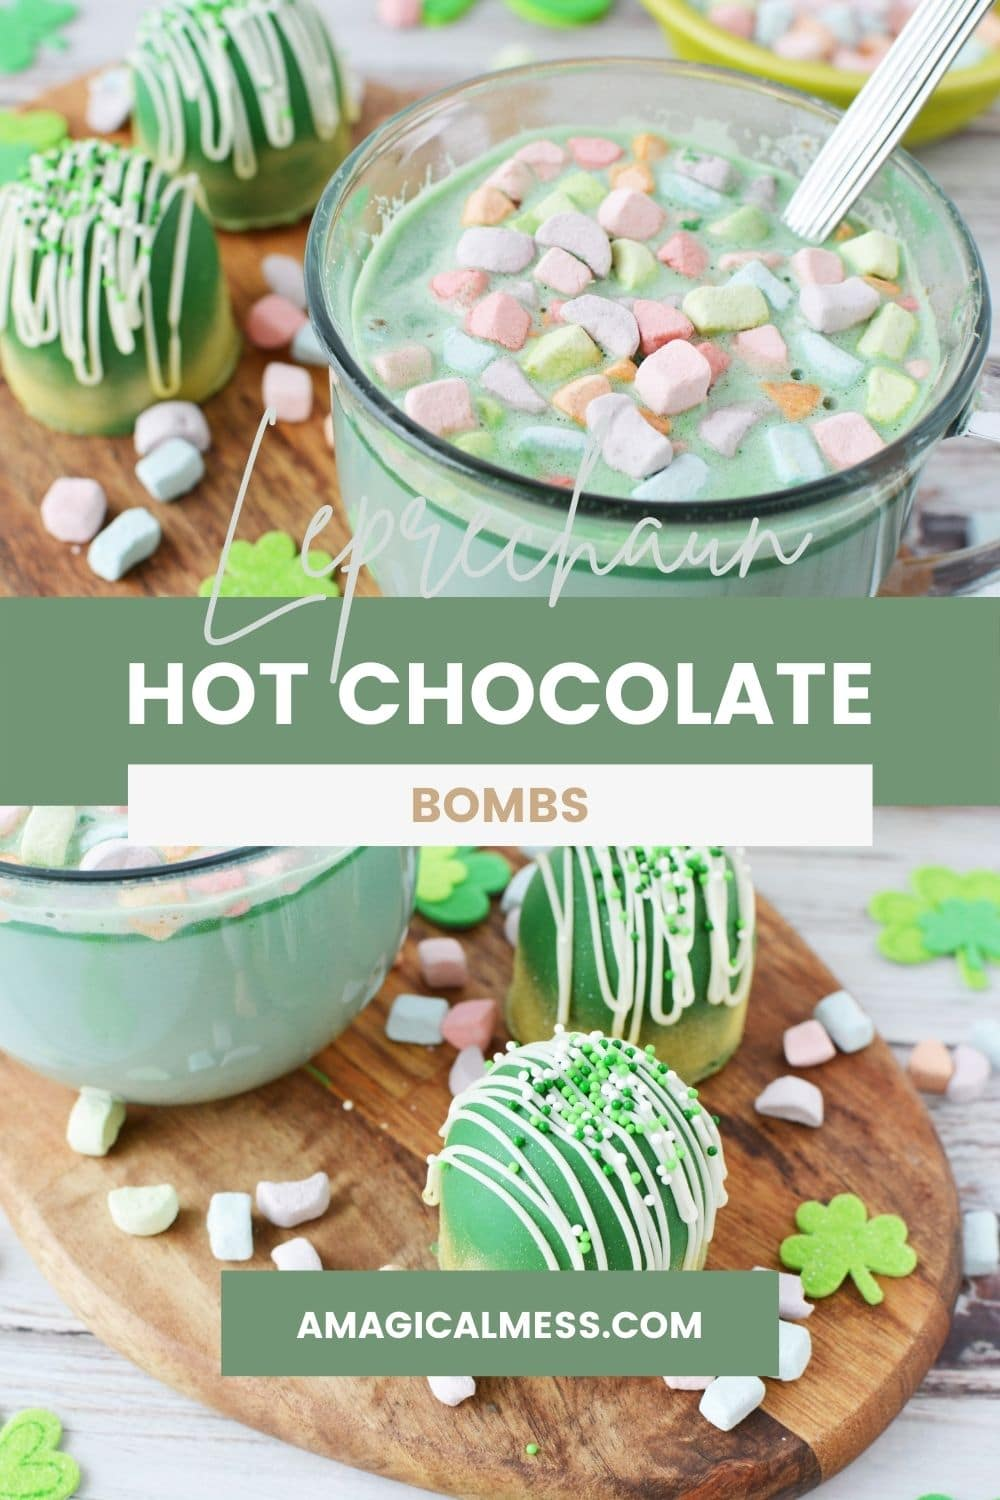 Green hot chocolate with marshmallows and green hot chocolate bombs on a board.